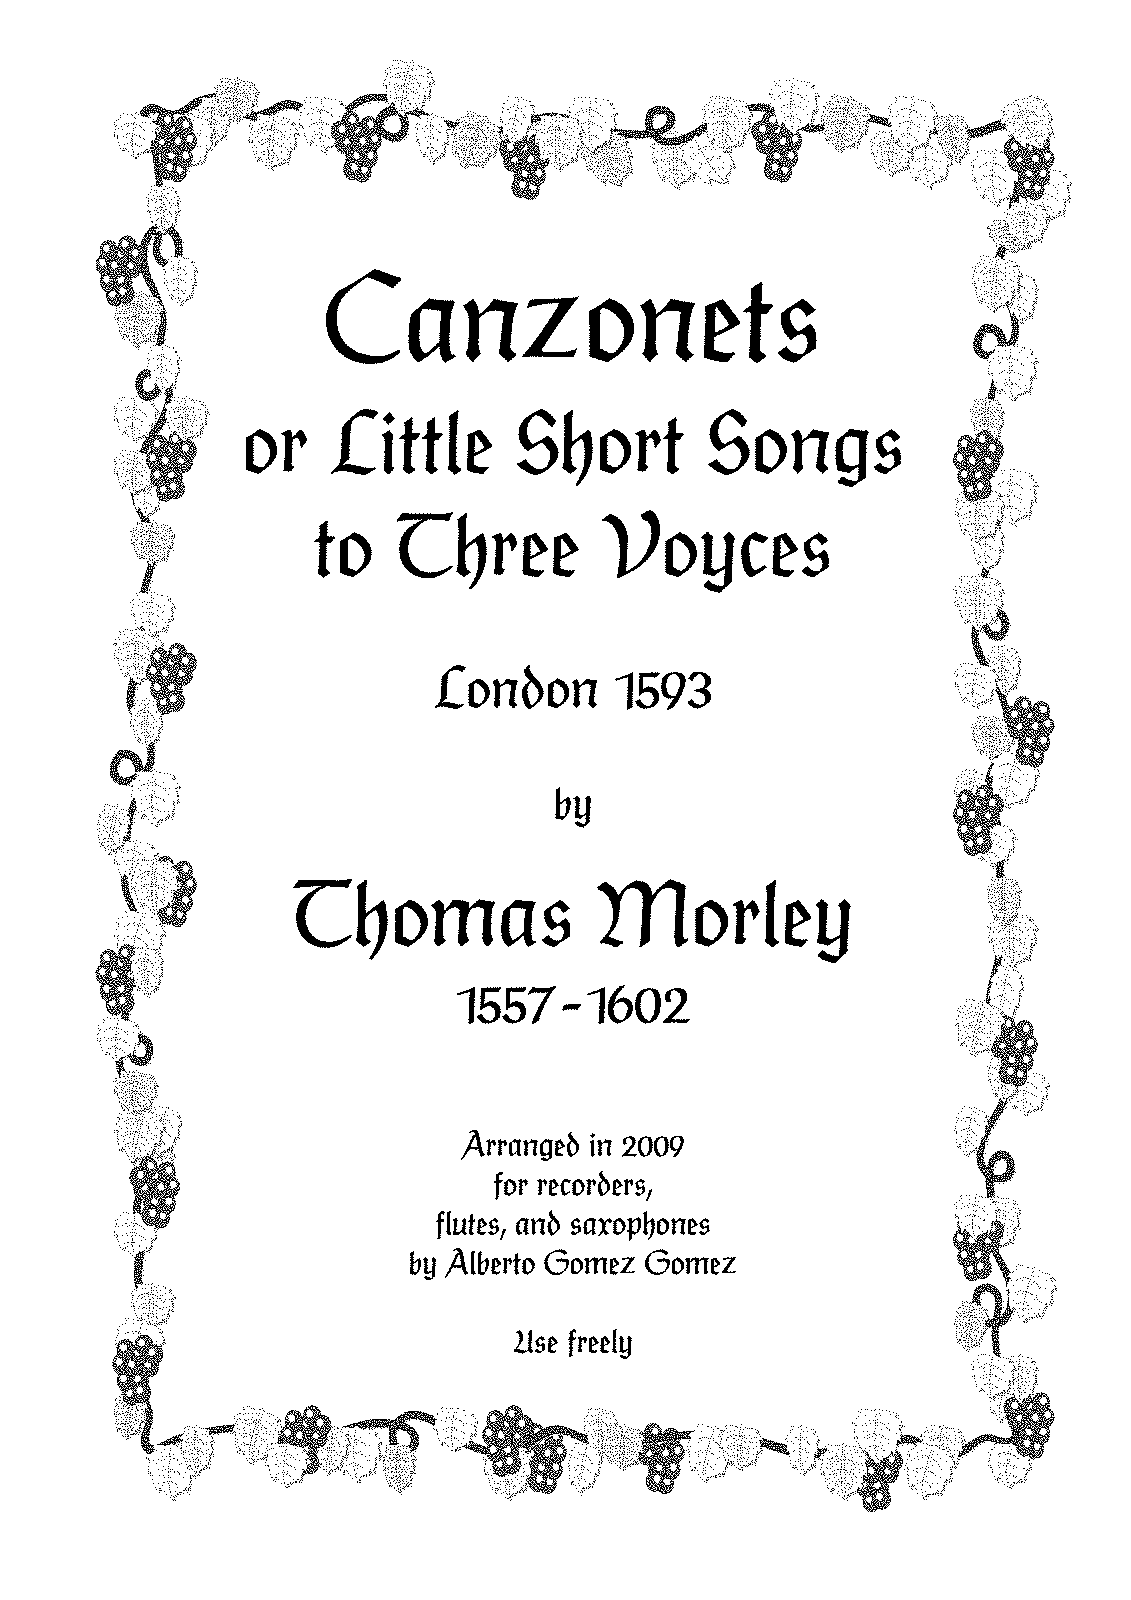 WIMA.1337-Canzonets-for-3-Voices.pdf